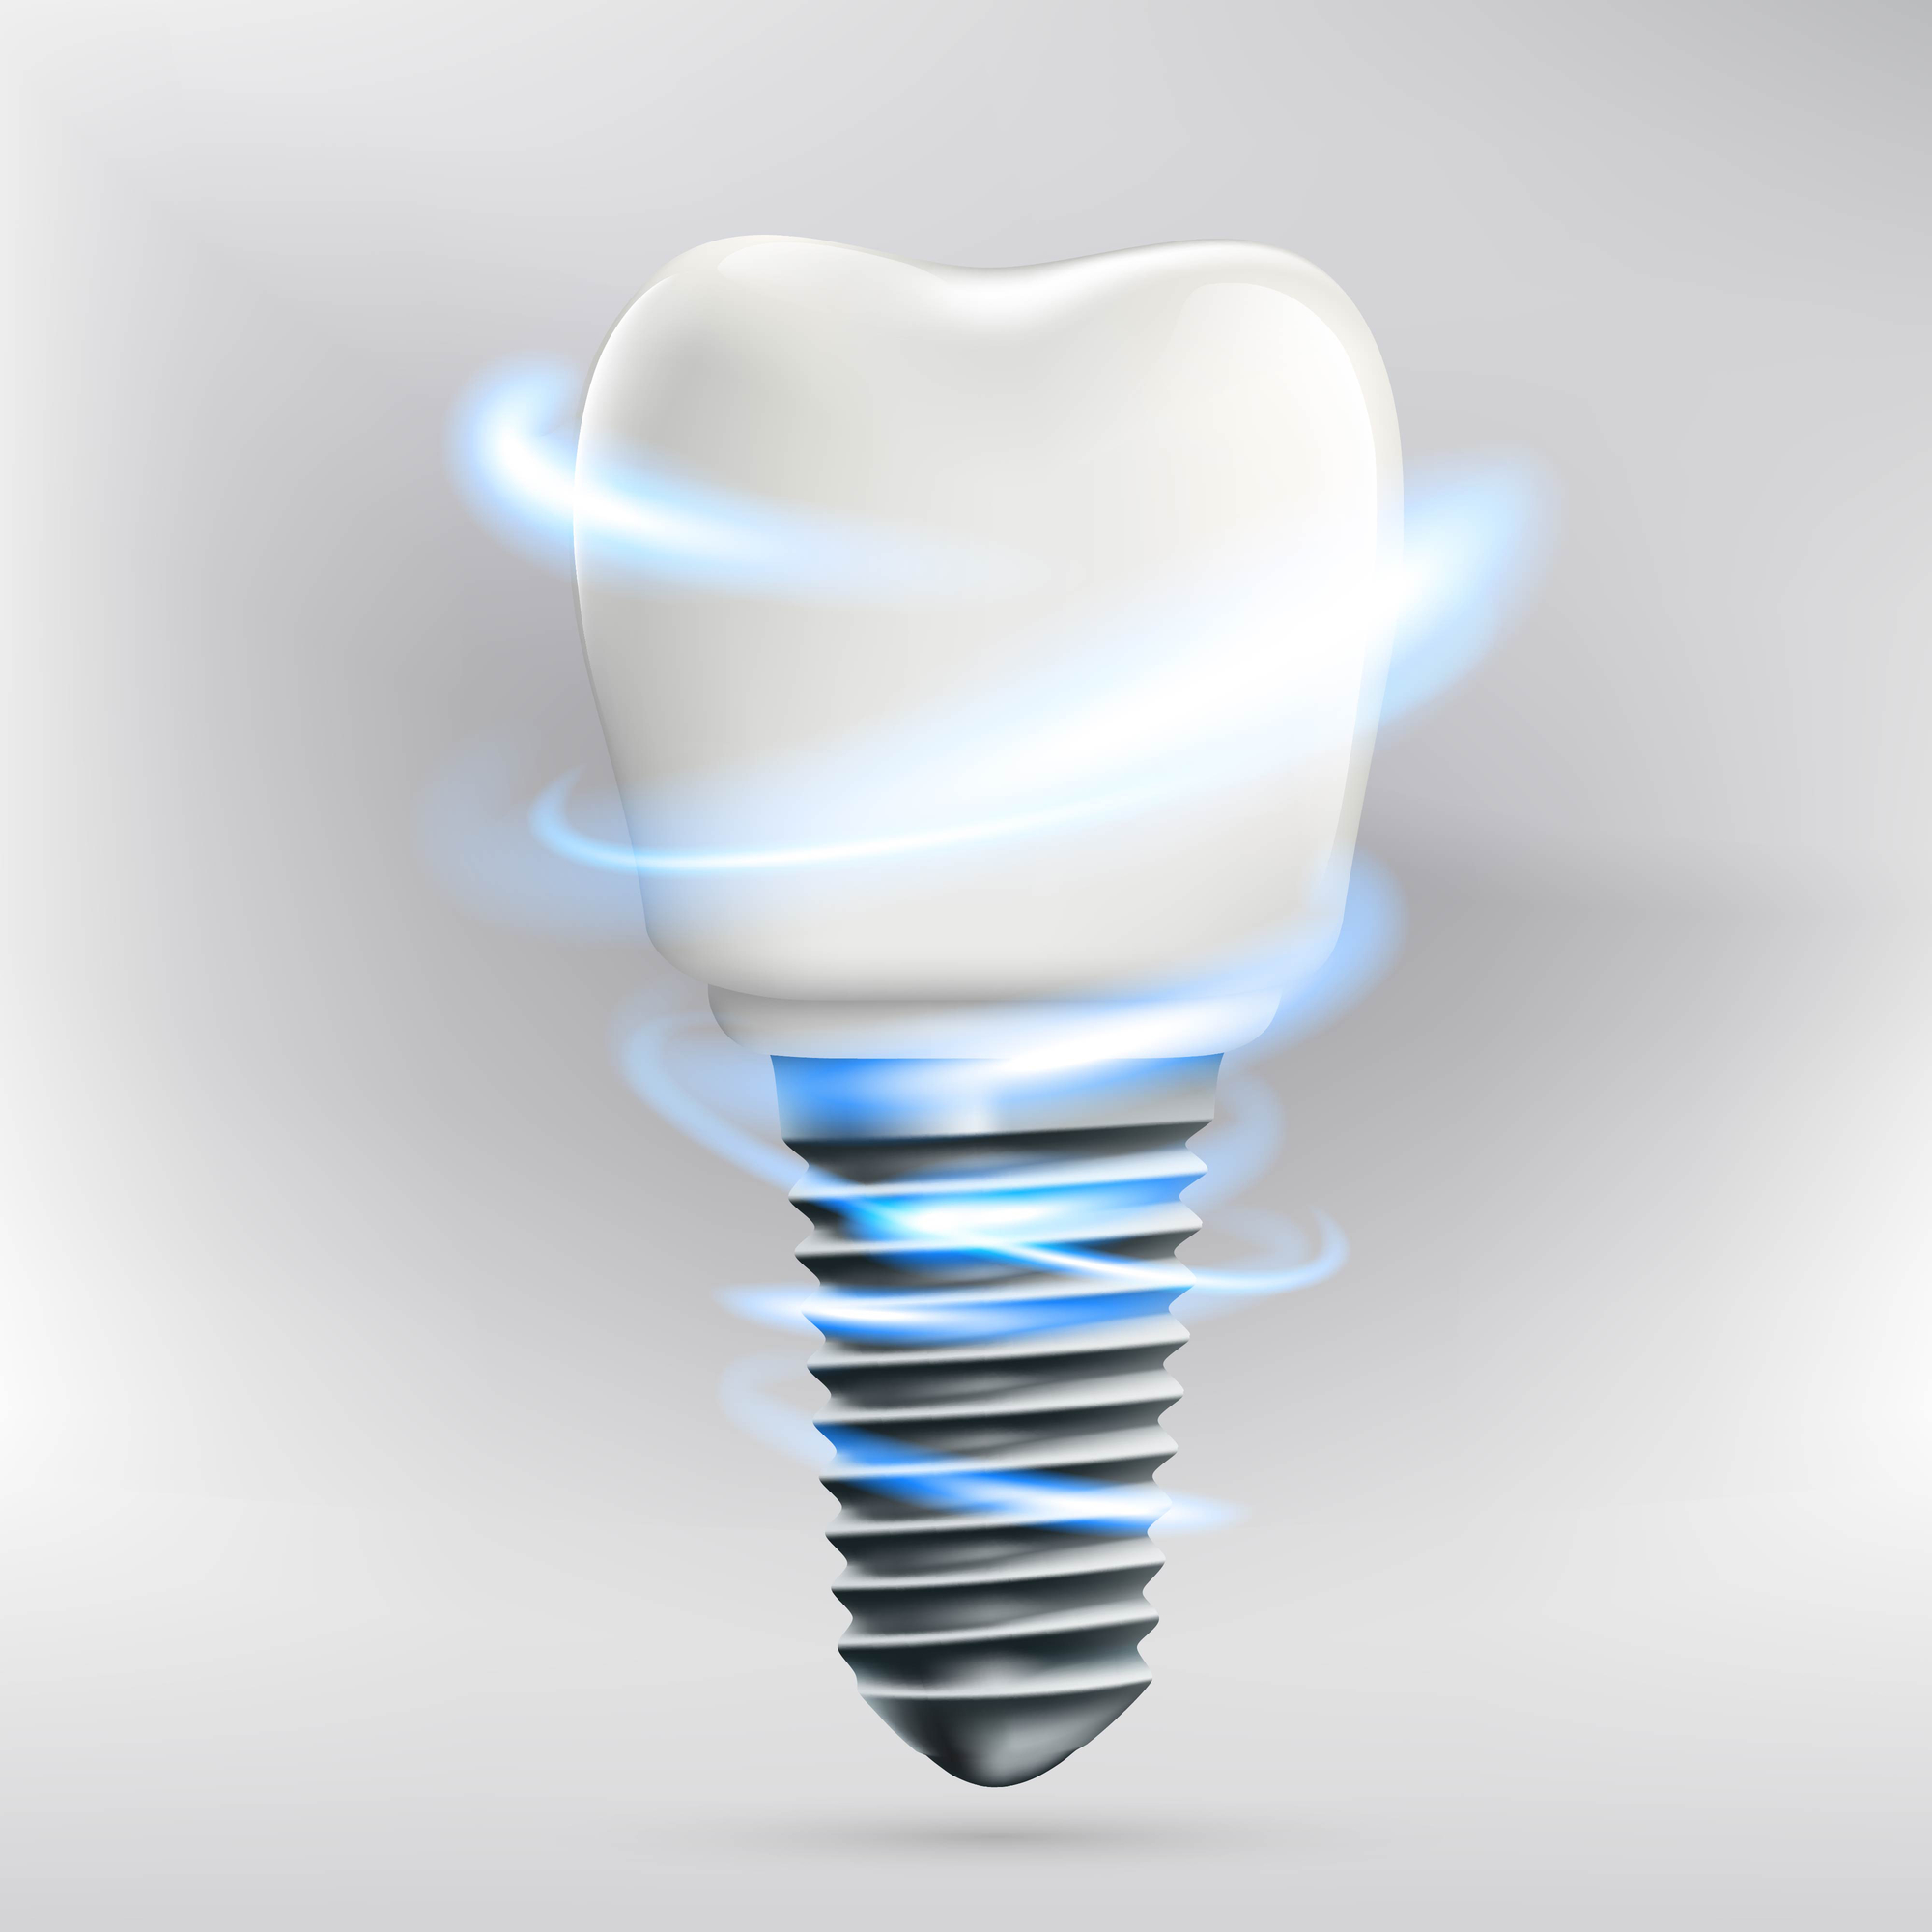 should i get dental implants in plantation?